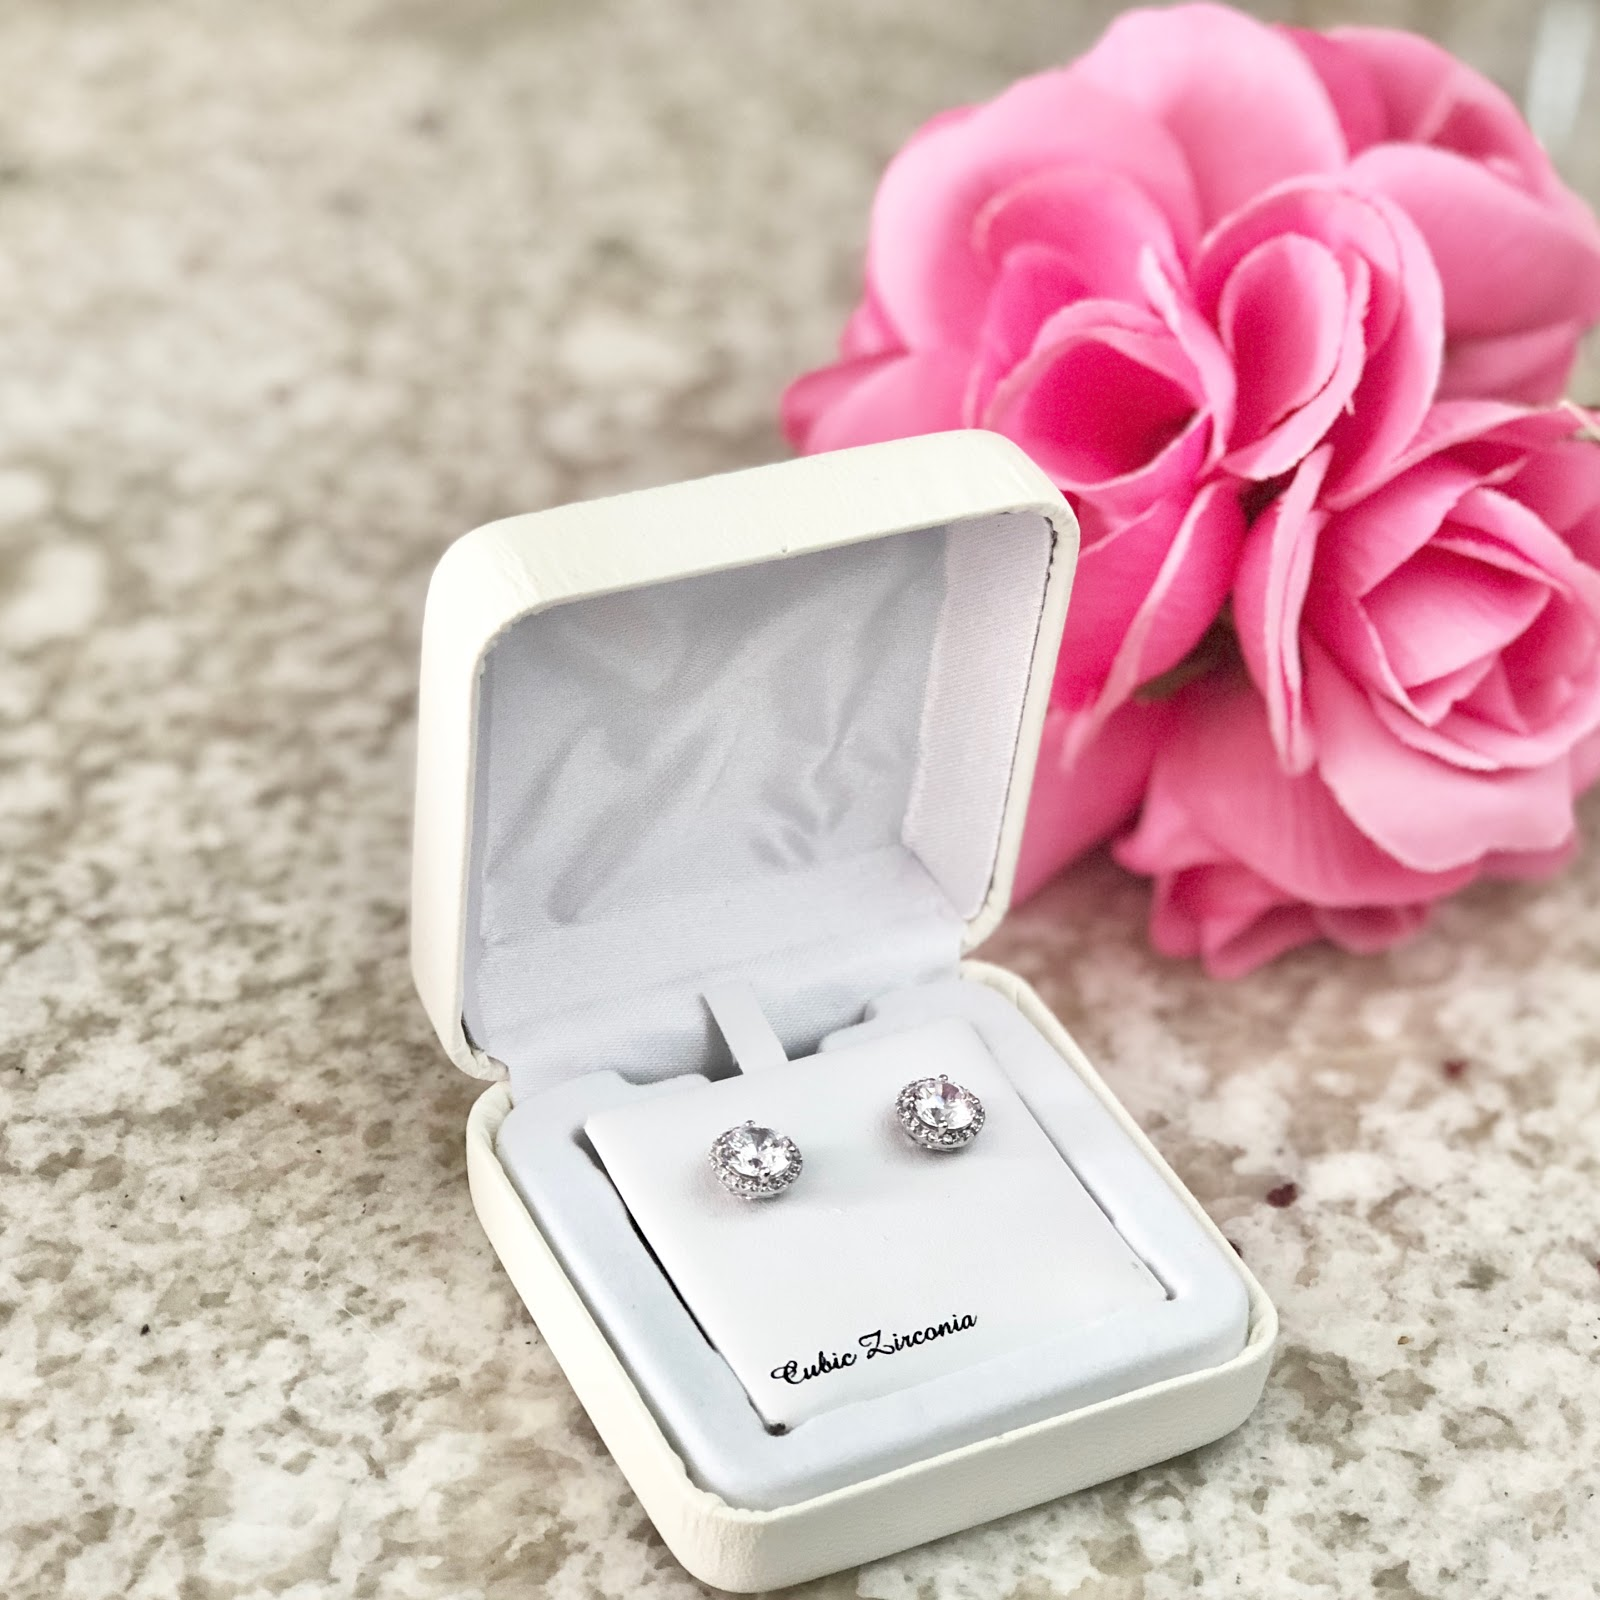 motherhood, motherhood marks, beauty marks, beauty spots, mother's day, earrings, present, mother present